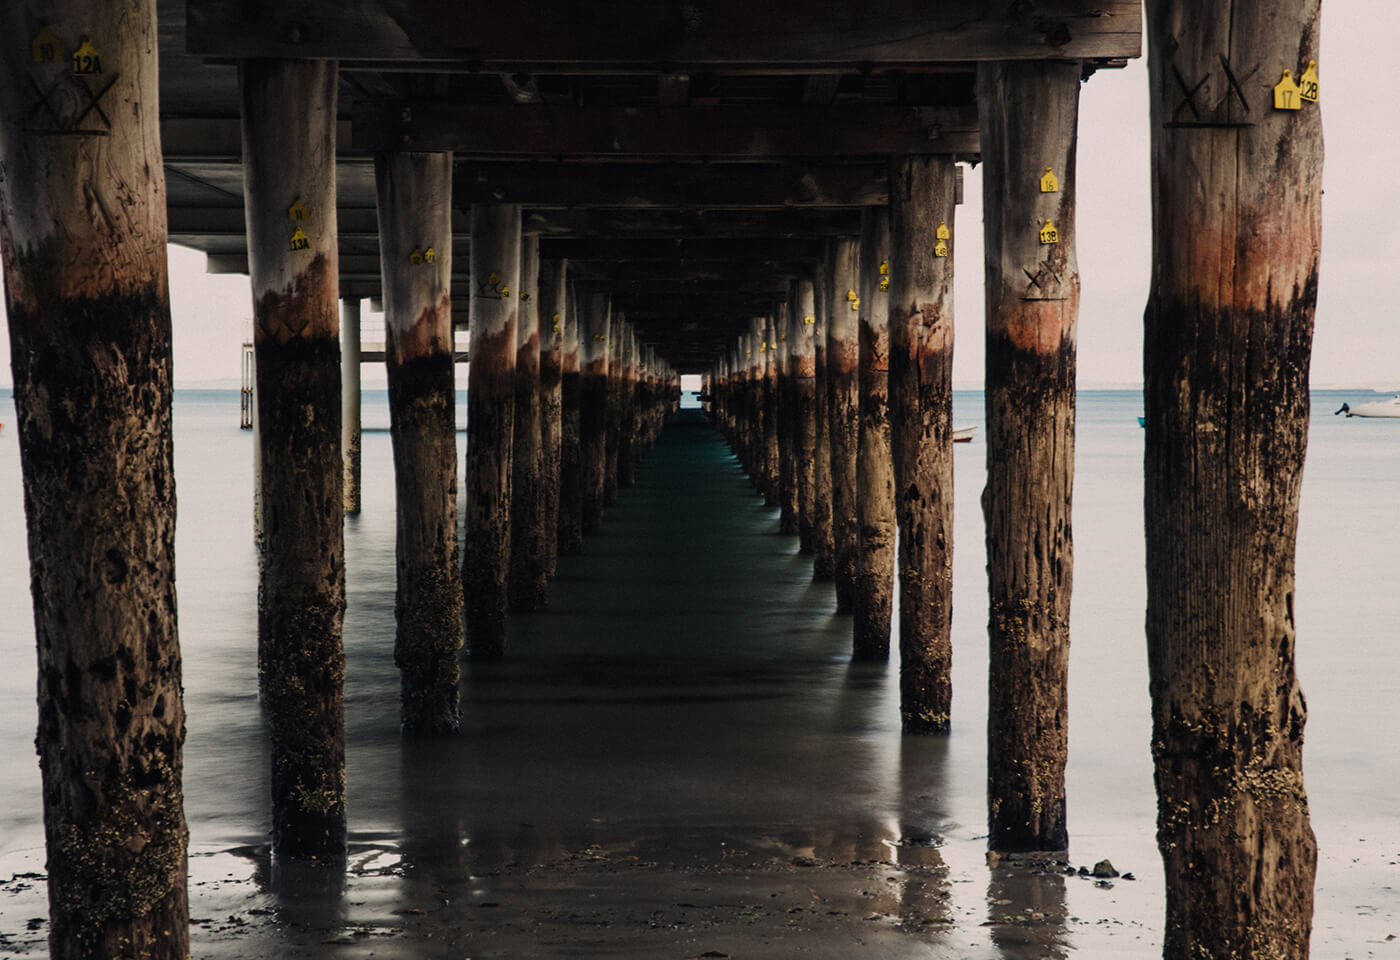 Image of Pier and Ocean